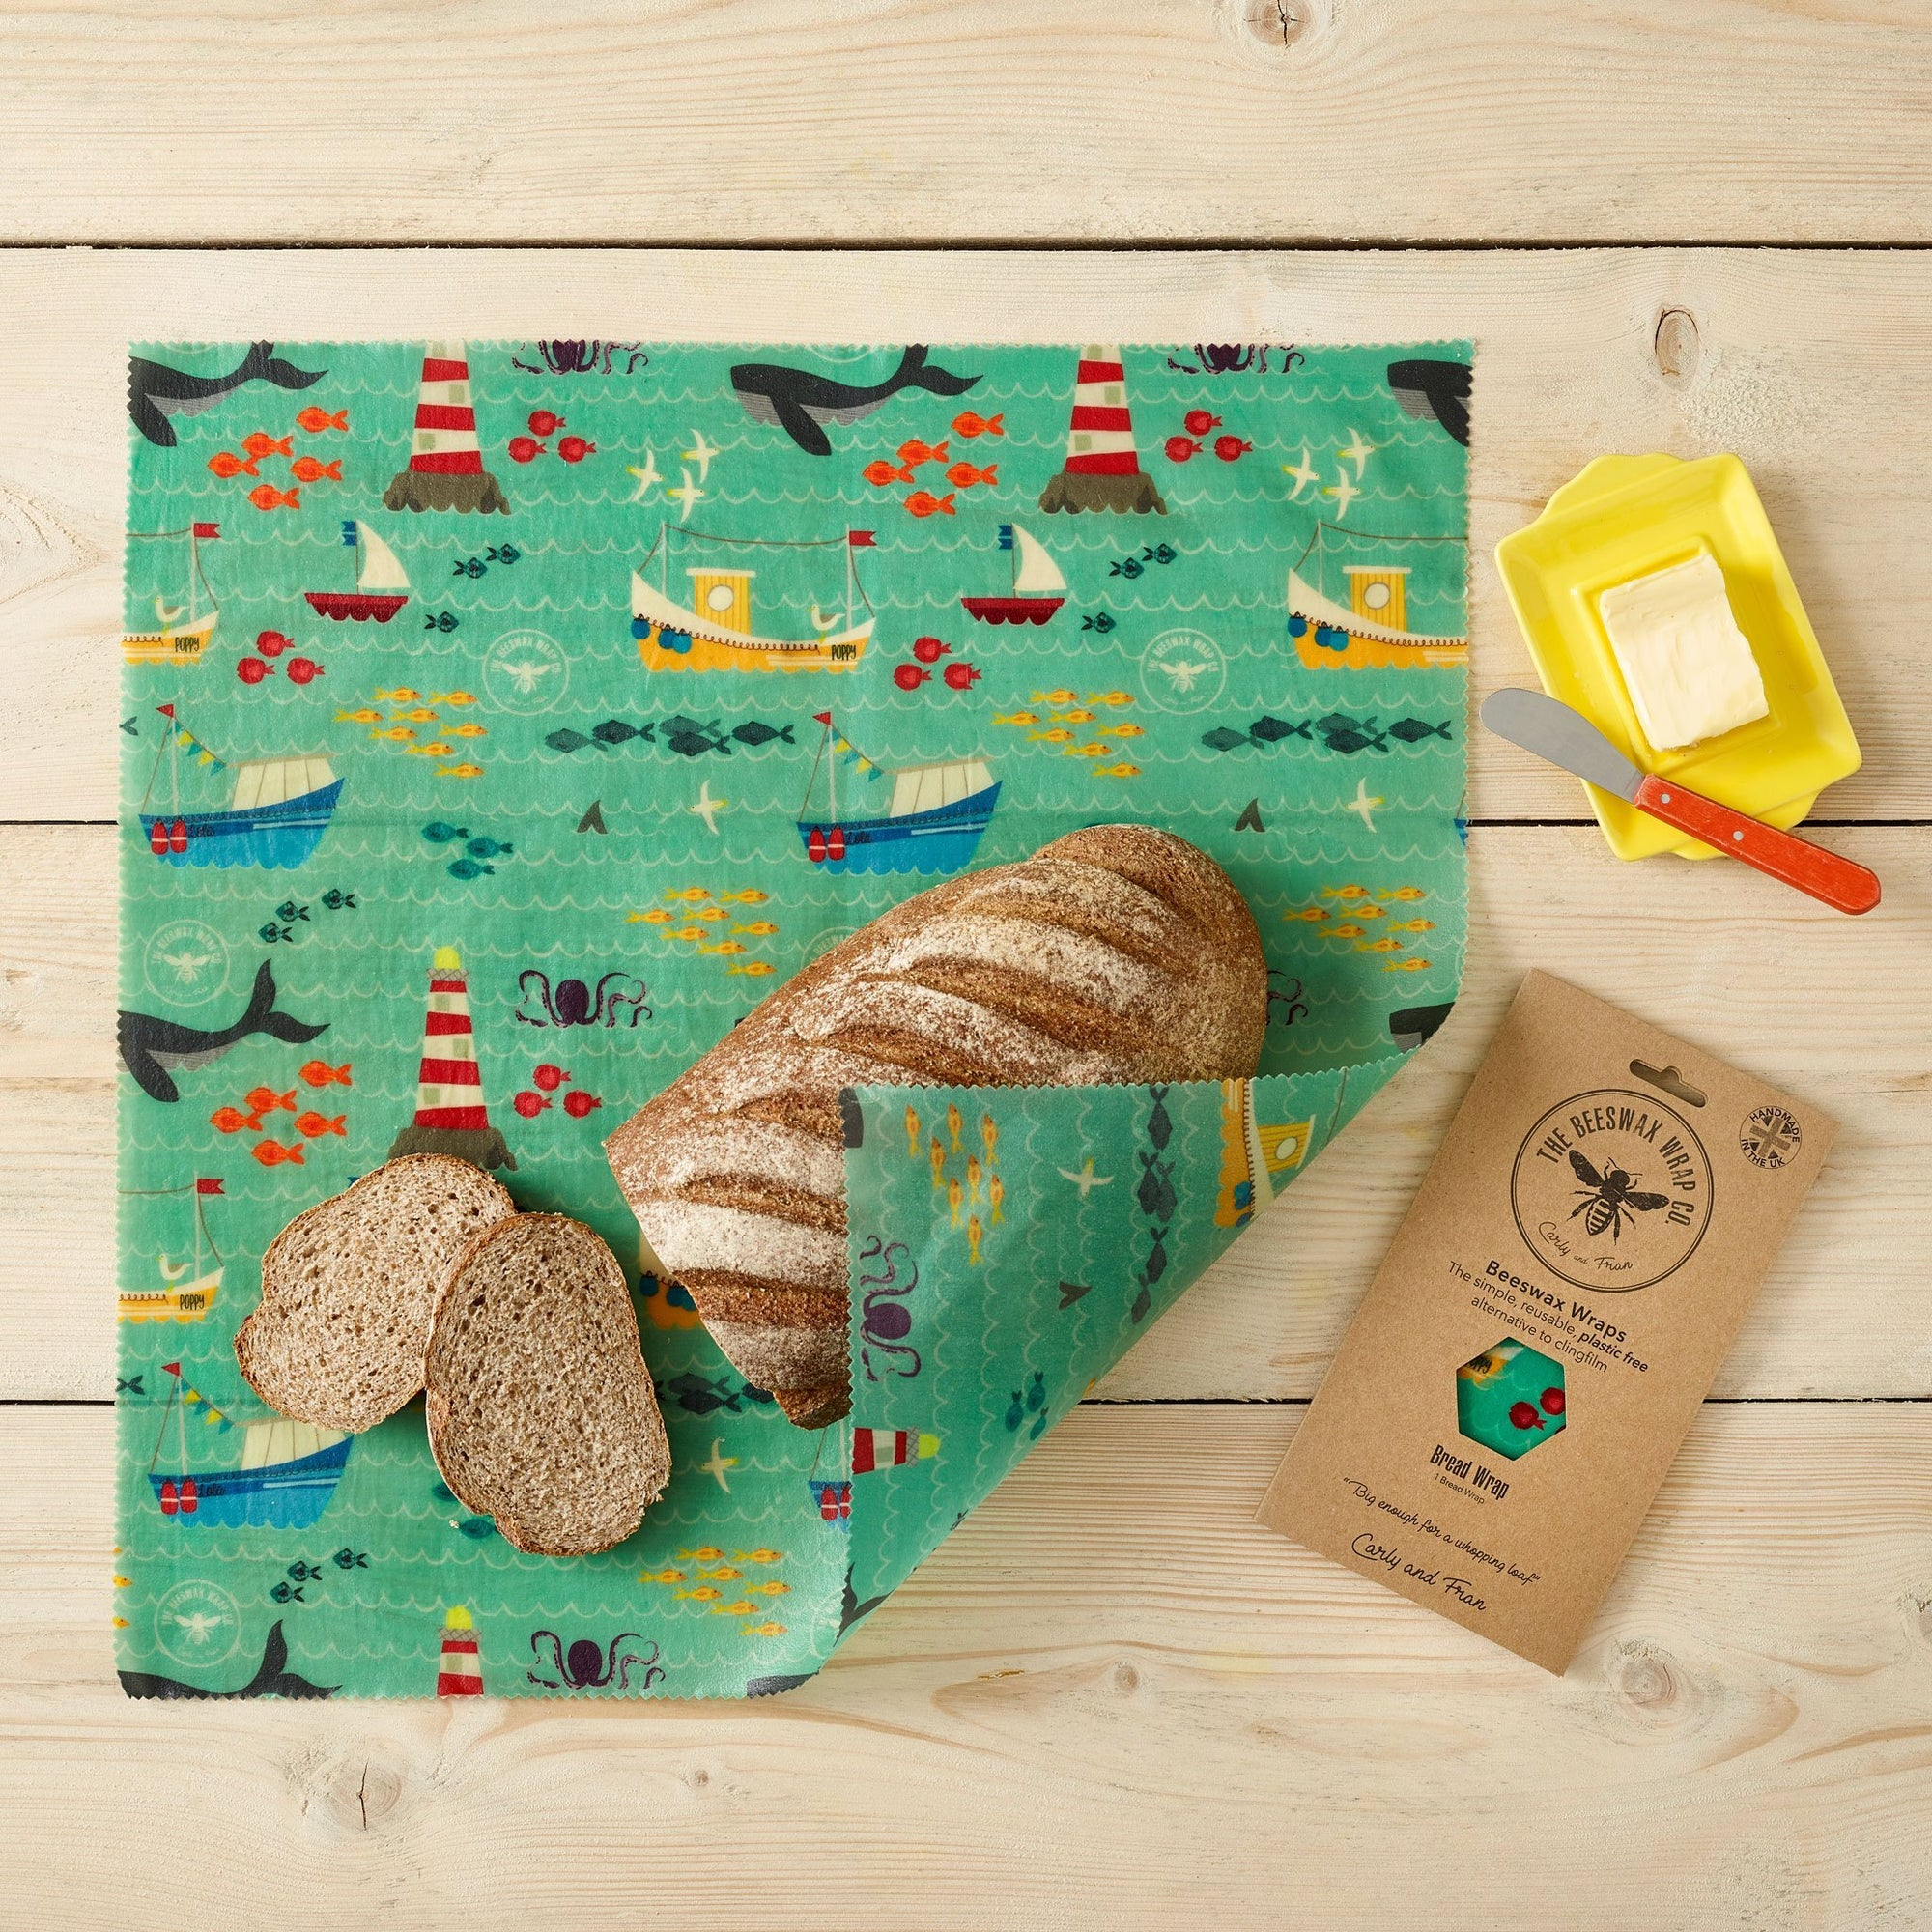 Beeswax Food Wrap - Bread Wrap - Sail Design | Food Wrap - The Naughty Shrew